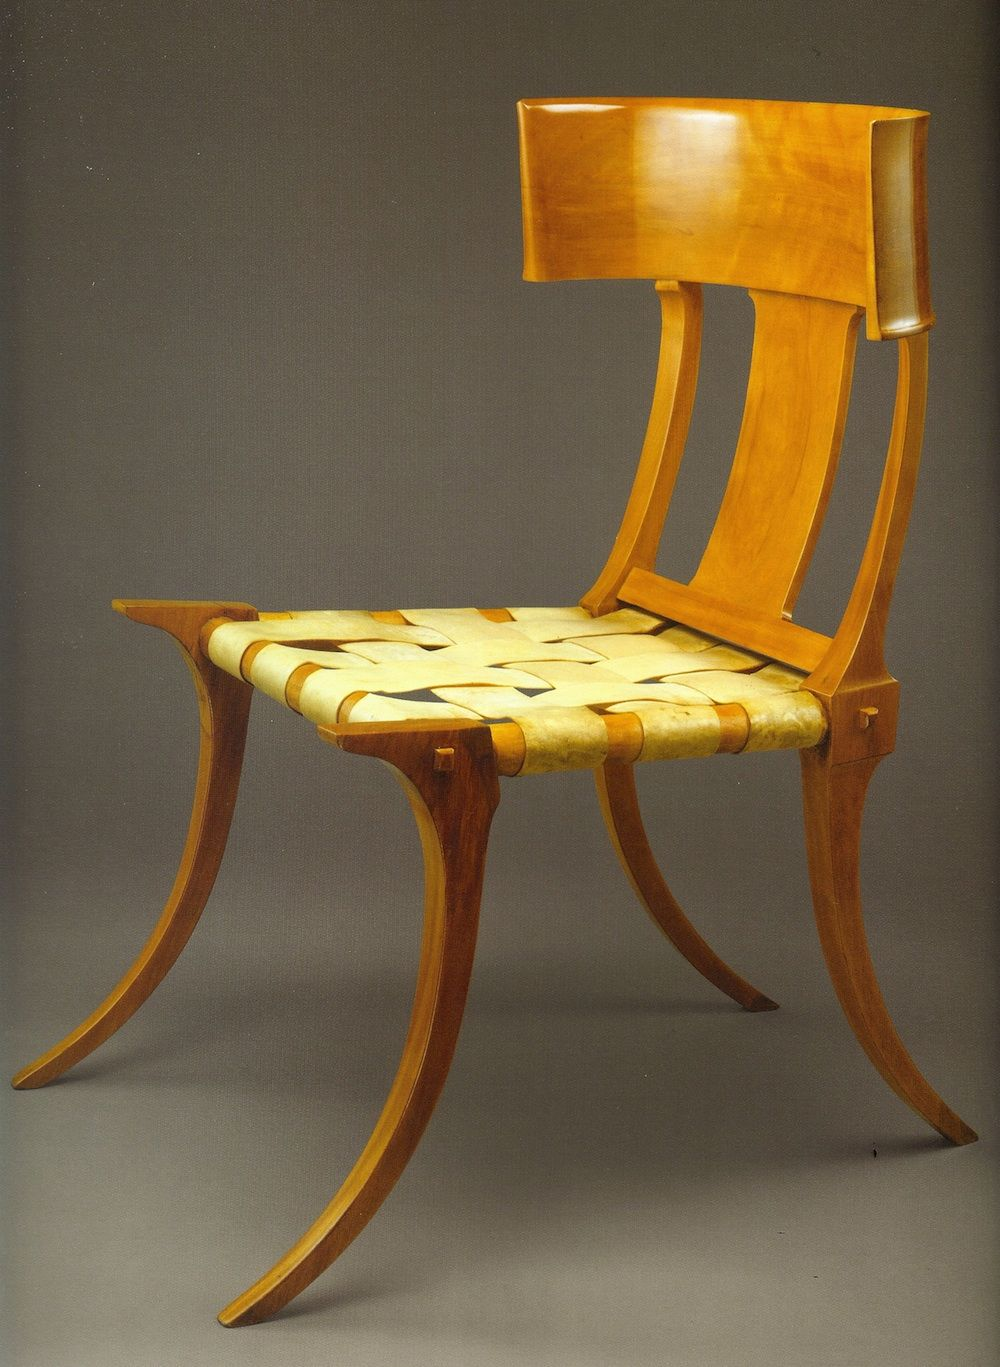 This Klismos Chair By T H Robsjohn Gibbings Was Based On